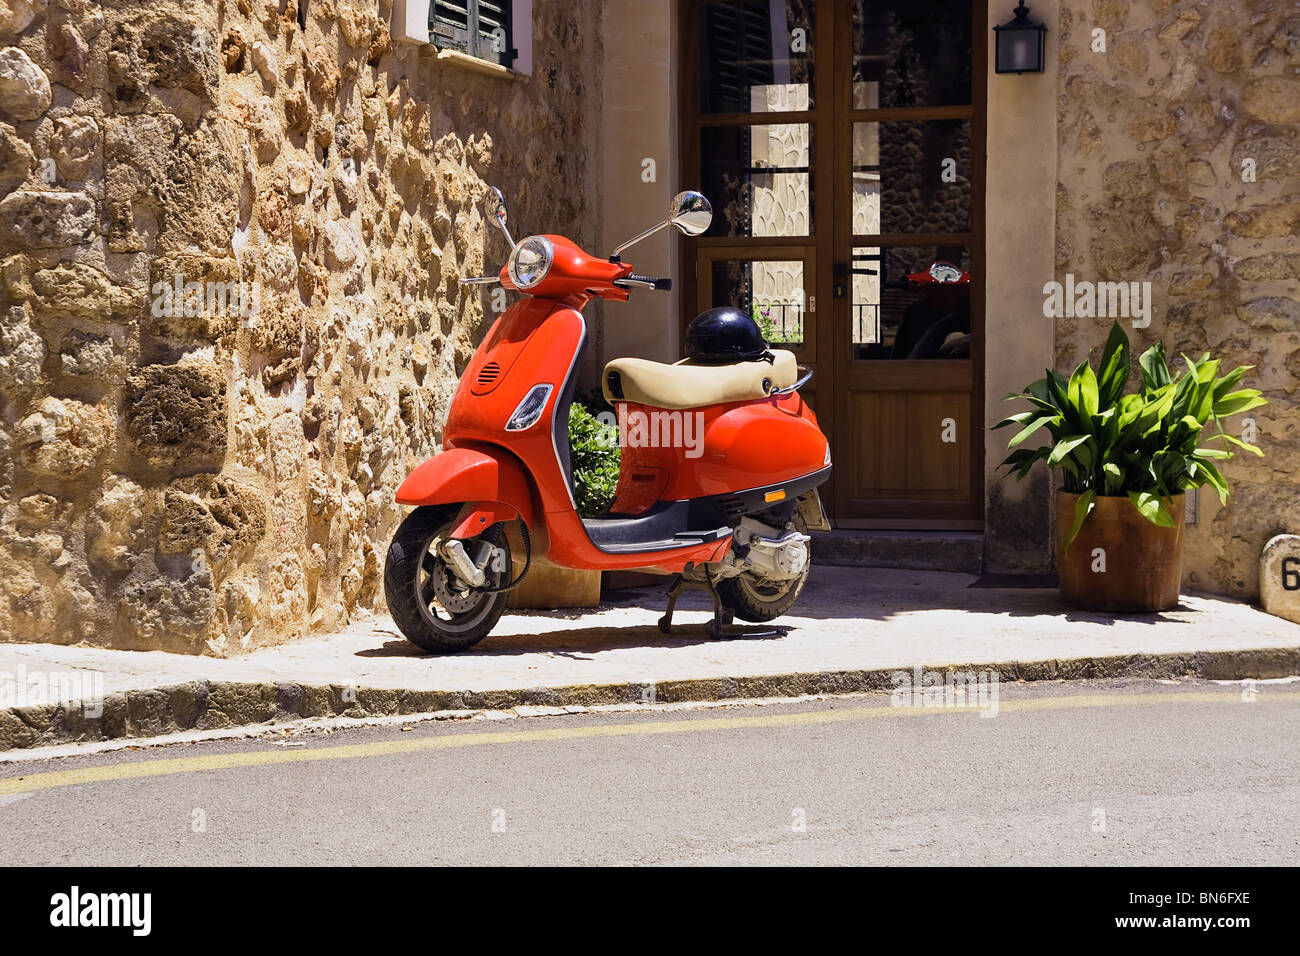 Red scooter parked in street. - Stock Image